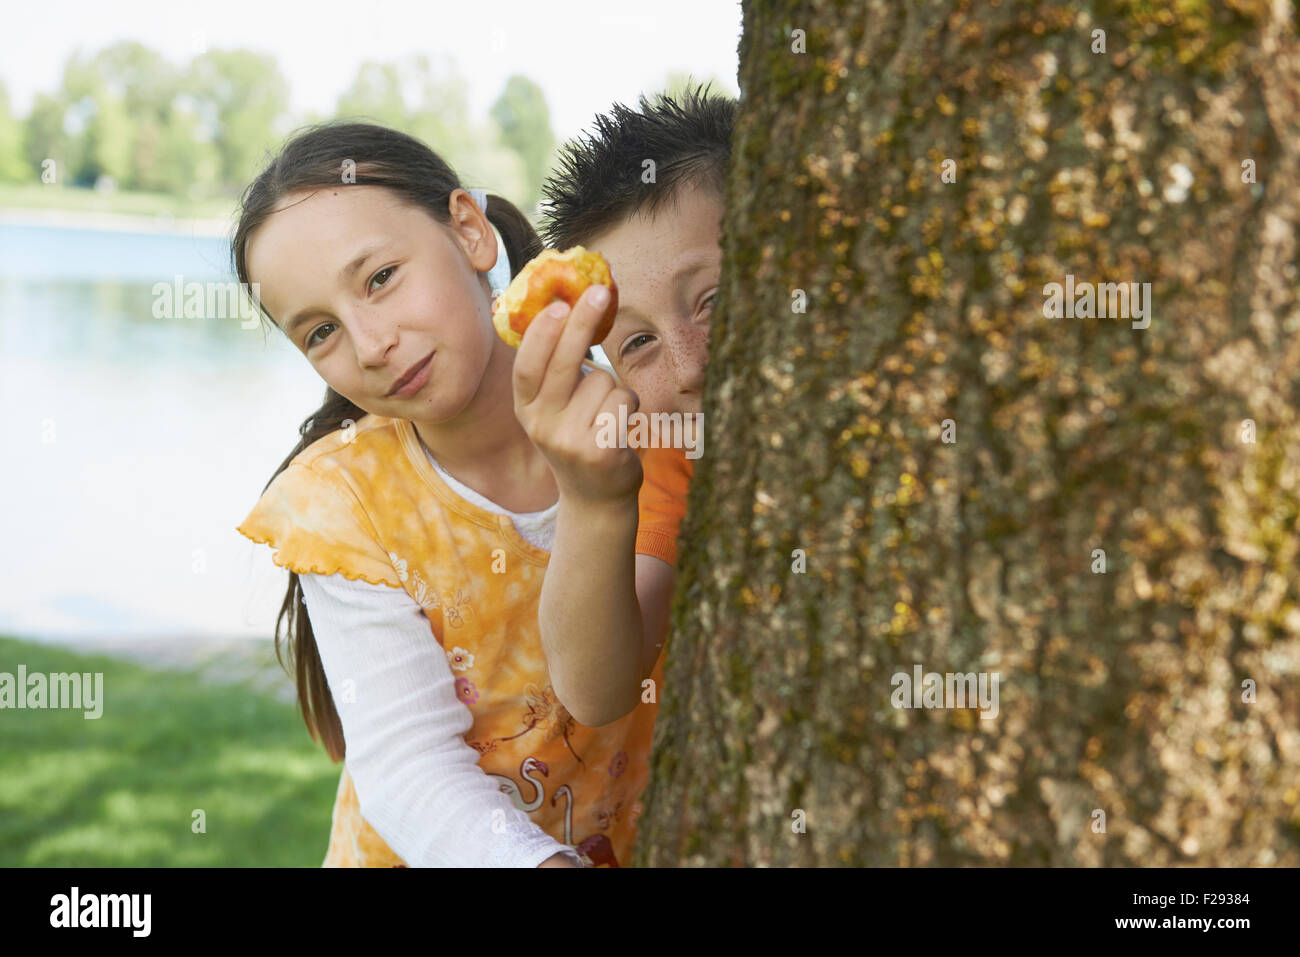 Girl peeking from behind a tree with her brother showing half eaten apple, Bavaria, Germany - Stock Image